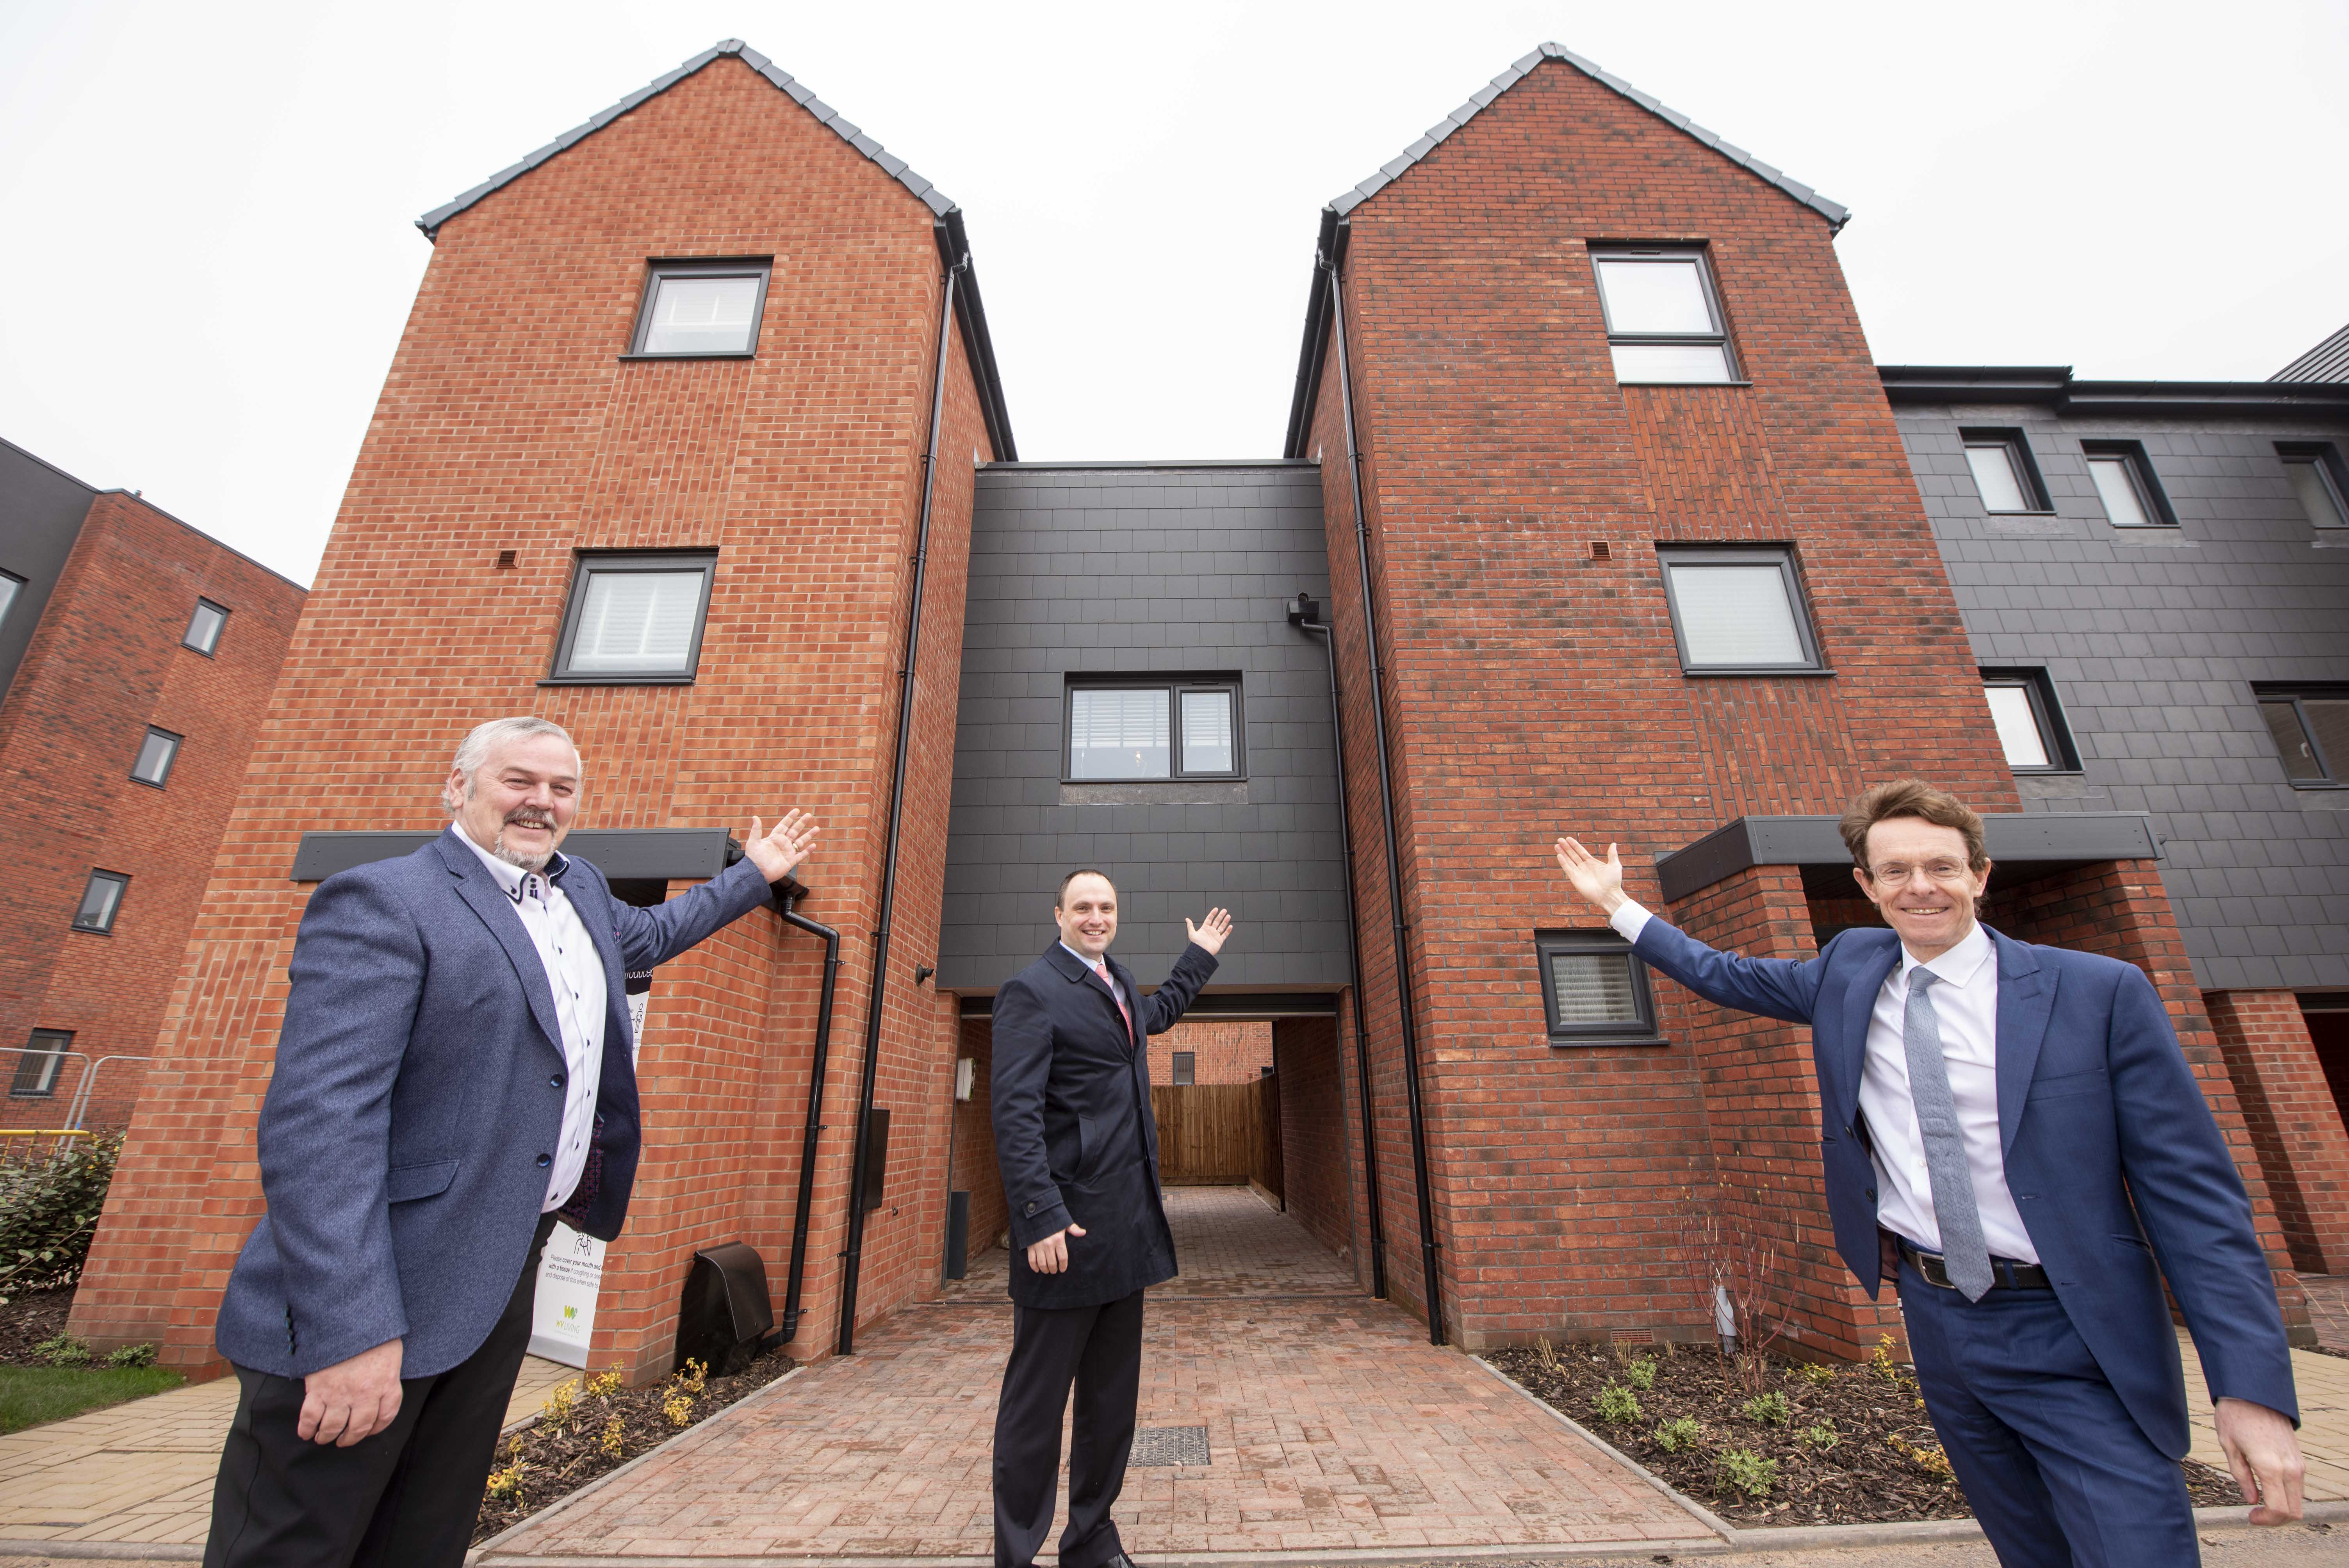 Wolverhampton leads way with pioneering home ownership scheme